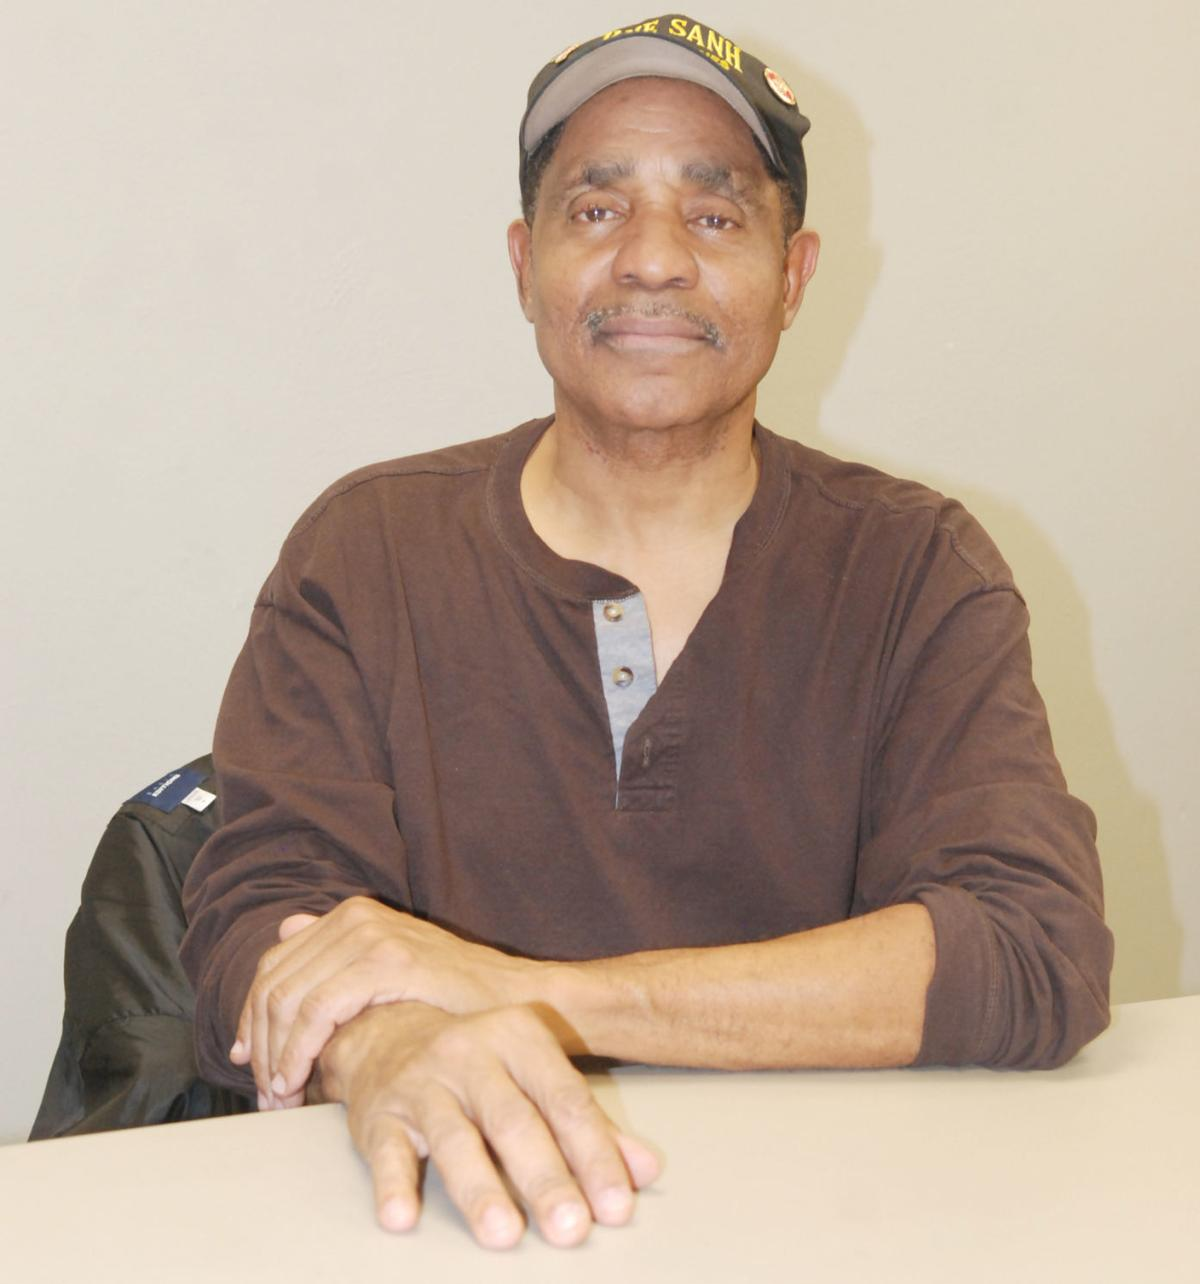 Vietnam War veteran shares experiences